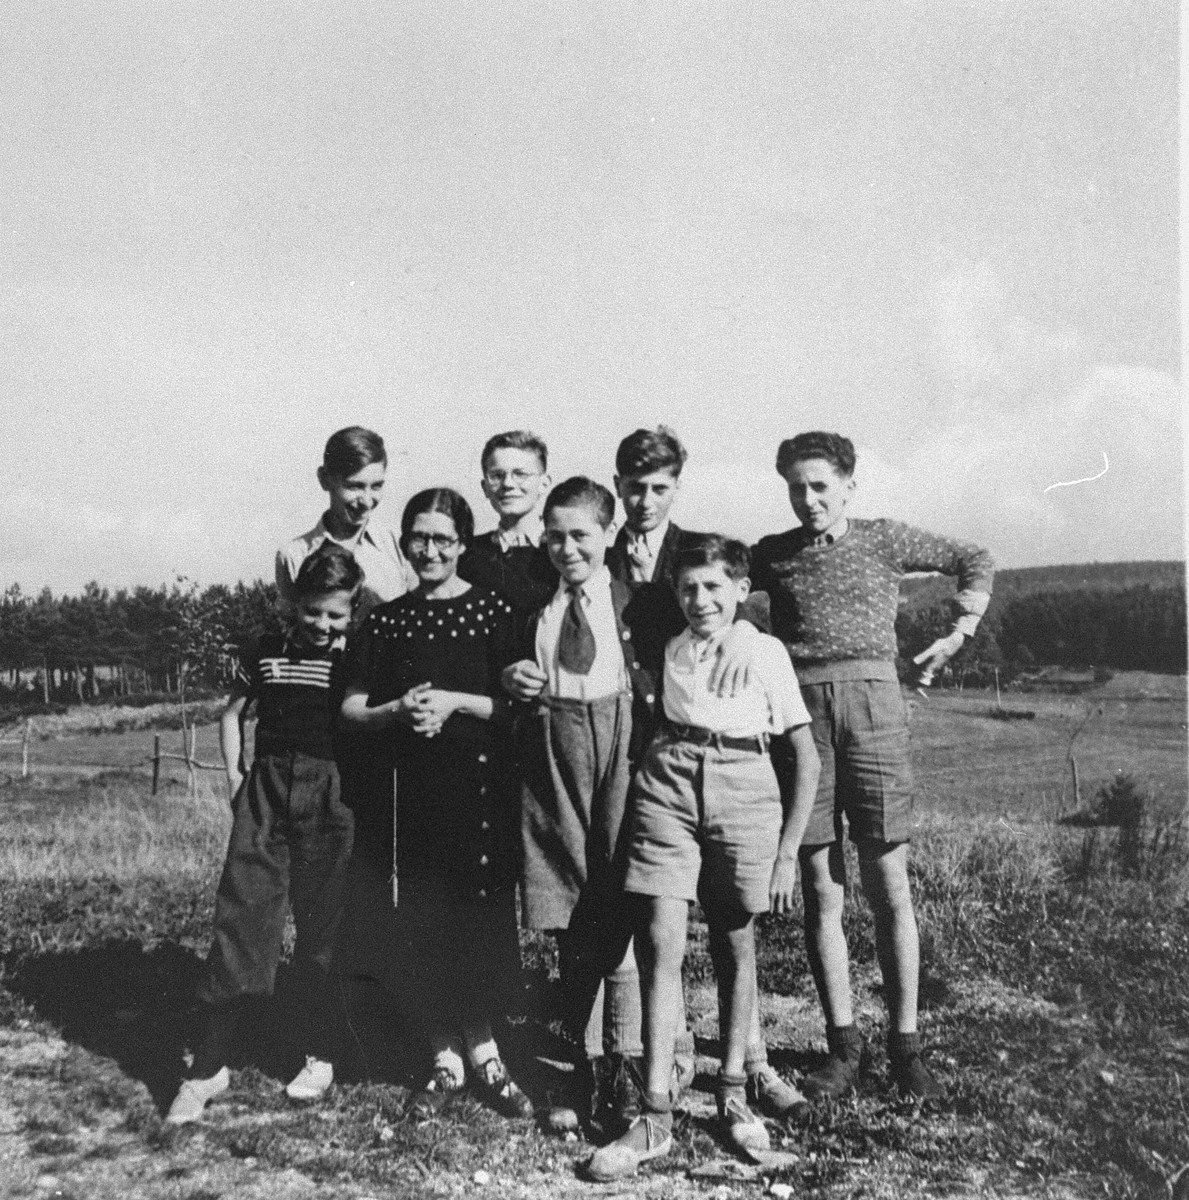 Juliette Usach poses with a group of Jewish youth who are living at the La Guespy children's home in Le Chambon-sur Lignon.  This is one photo from an album presented to Elizabeth Kaufmann prior to her departure from the La Guespy refugee home in Le Chambon-sur-Lignon.    Founded in 1941 by the Secours Suisse aux enfants and run by Juliette Usach, the La Guespy children's home provided shelter to a number of Jewish and non-Jewish refugee children who were living in Le Chambon-sur-Lignon during the Nazi occupation.  Among those pictured are Jean Nallet (back row with glasses), Joseph Atlas (back row, third from the left), Victor Atlas (back row, right), Manfred Goldberger and Juliette Usach.